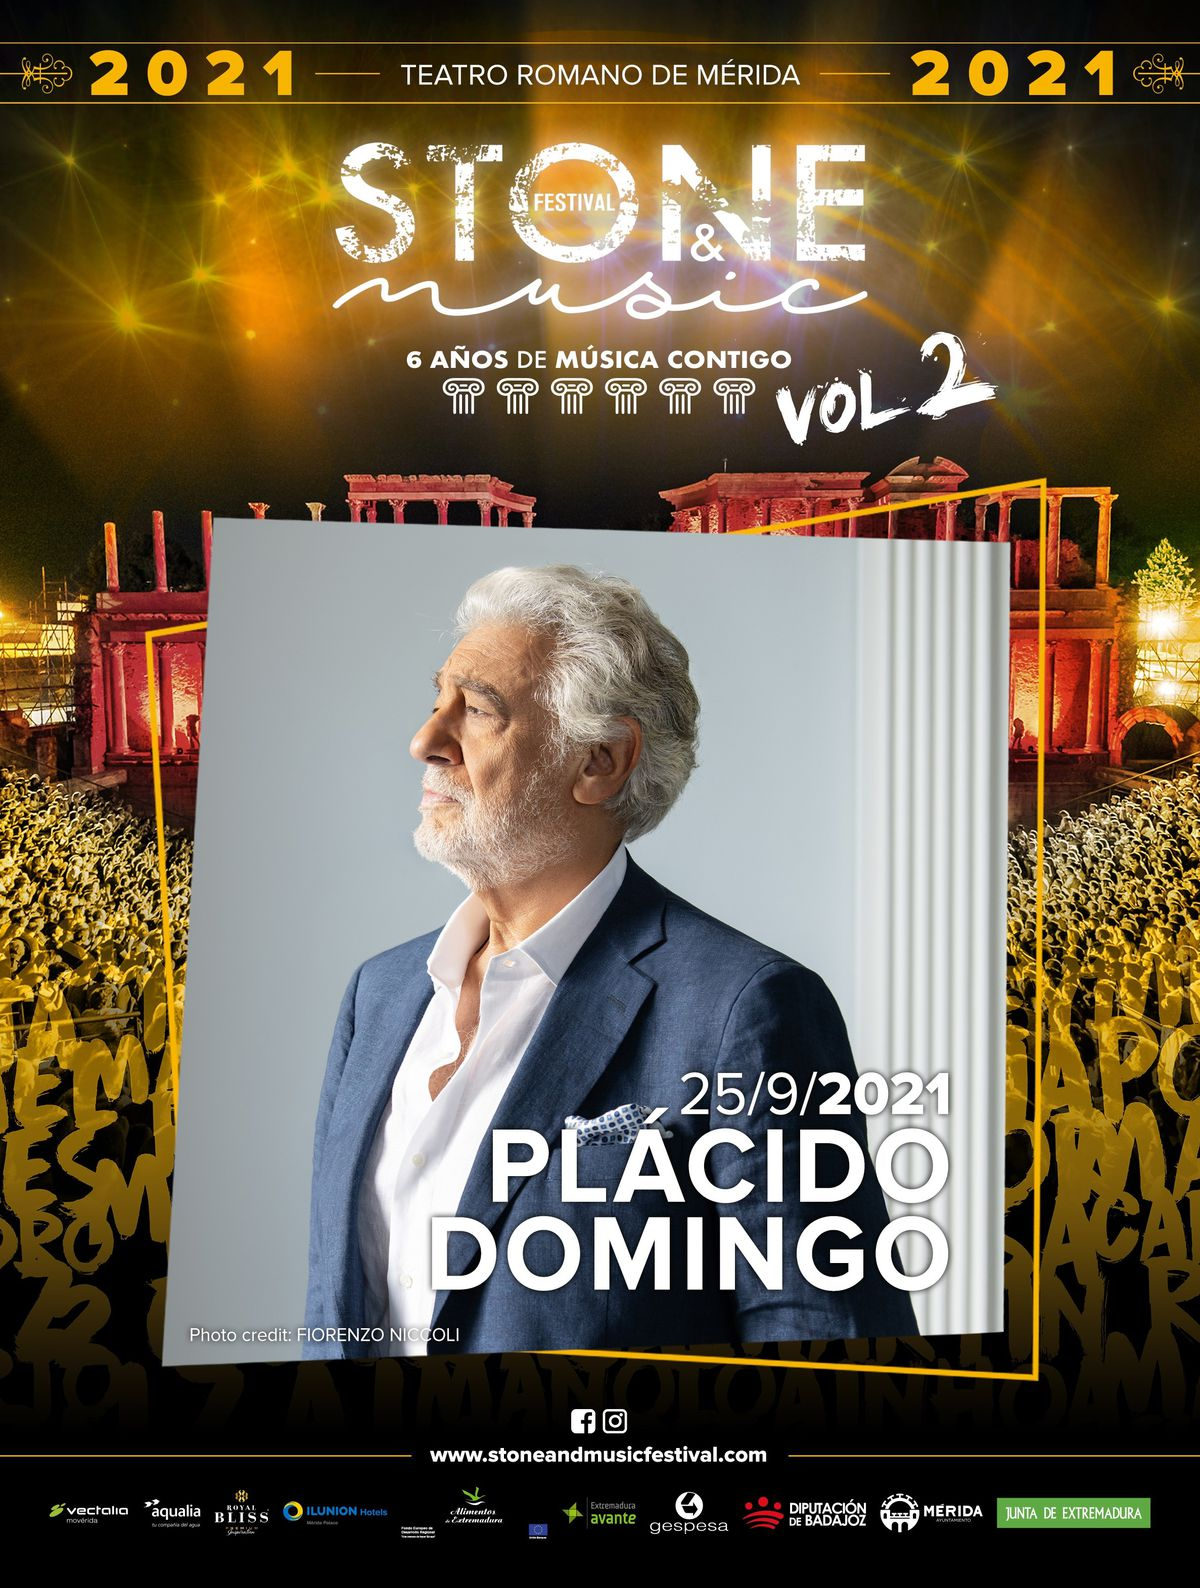 The Extremadura Orchestra will not perform with Plácido Domingo at a music festival in Mérida